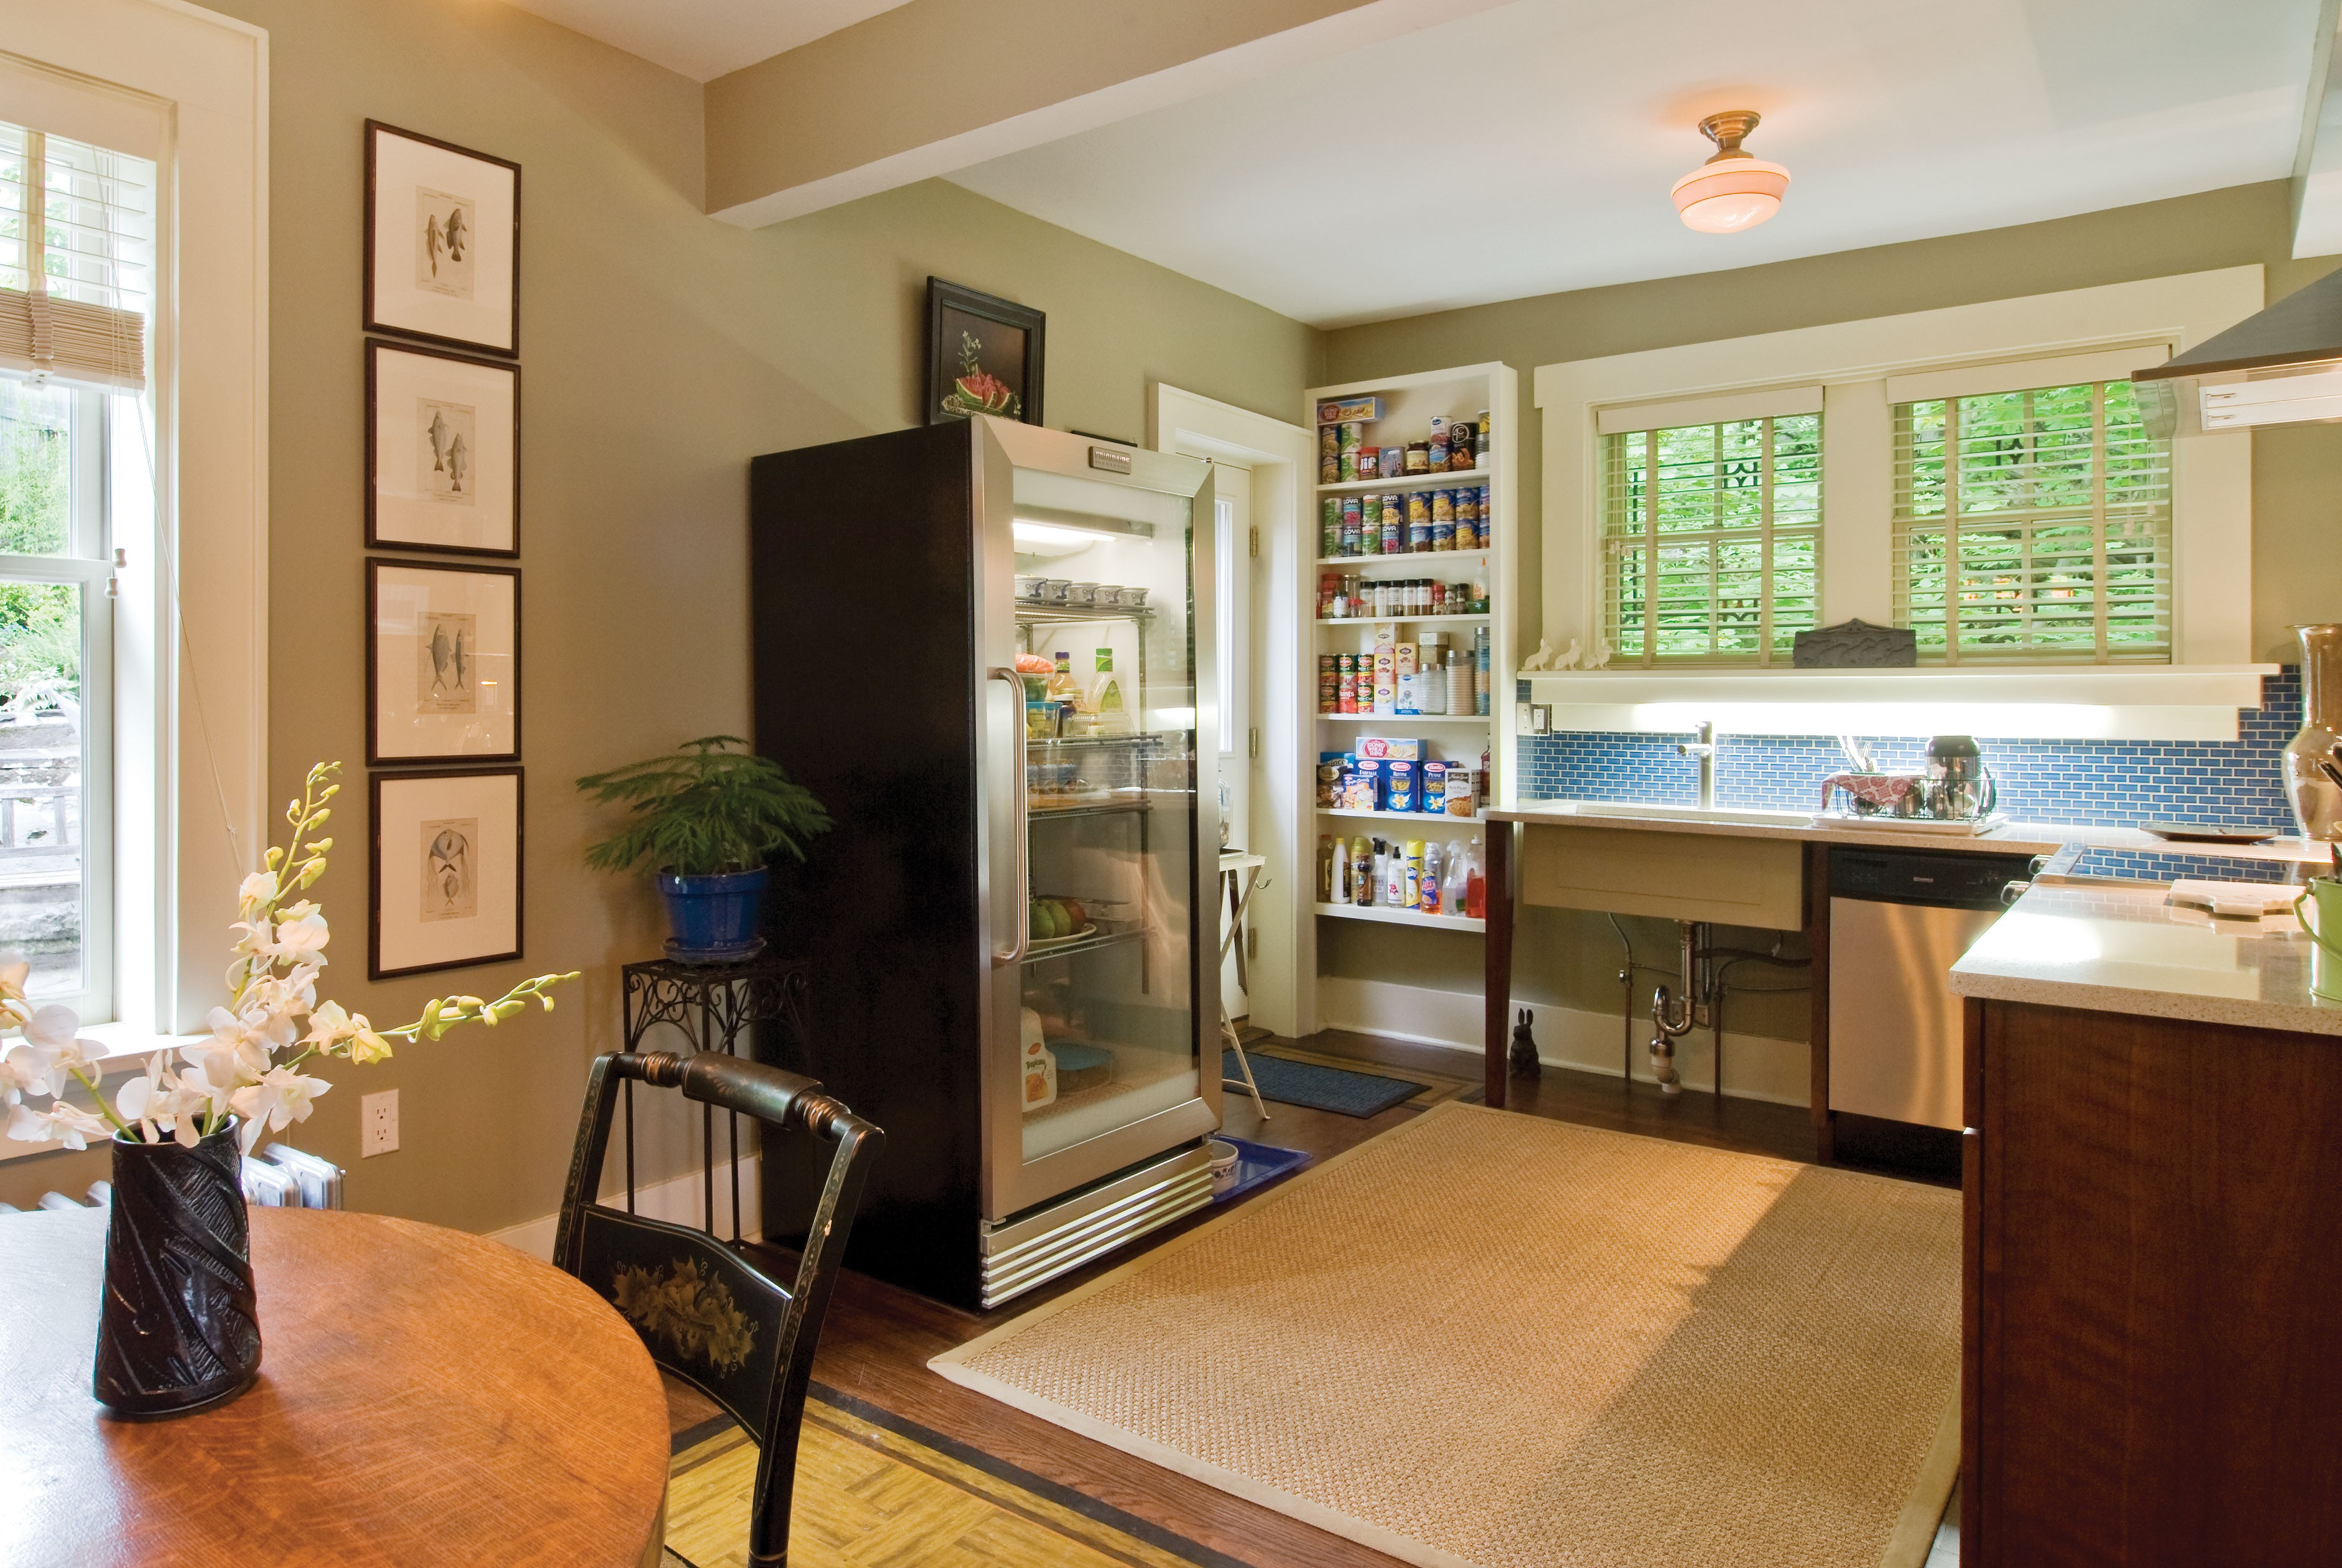 The eat-in kitchen is used to maximum efficiency with a minimum of storage space and stainless-steel appliances. - DEBORAH DEGRAFFENREID